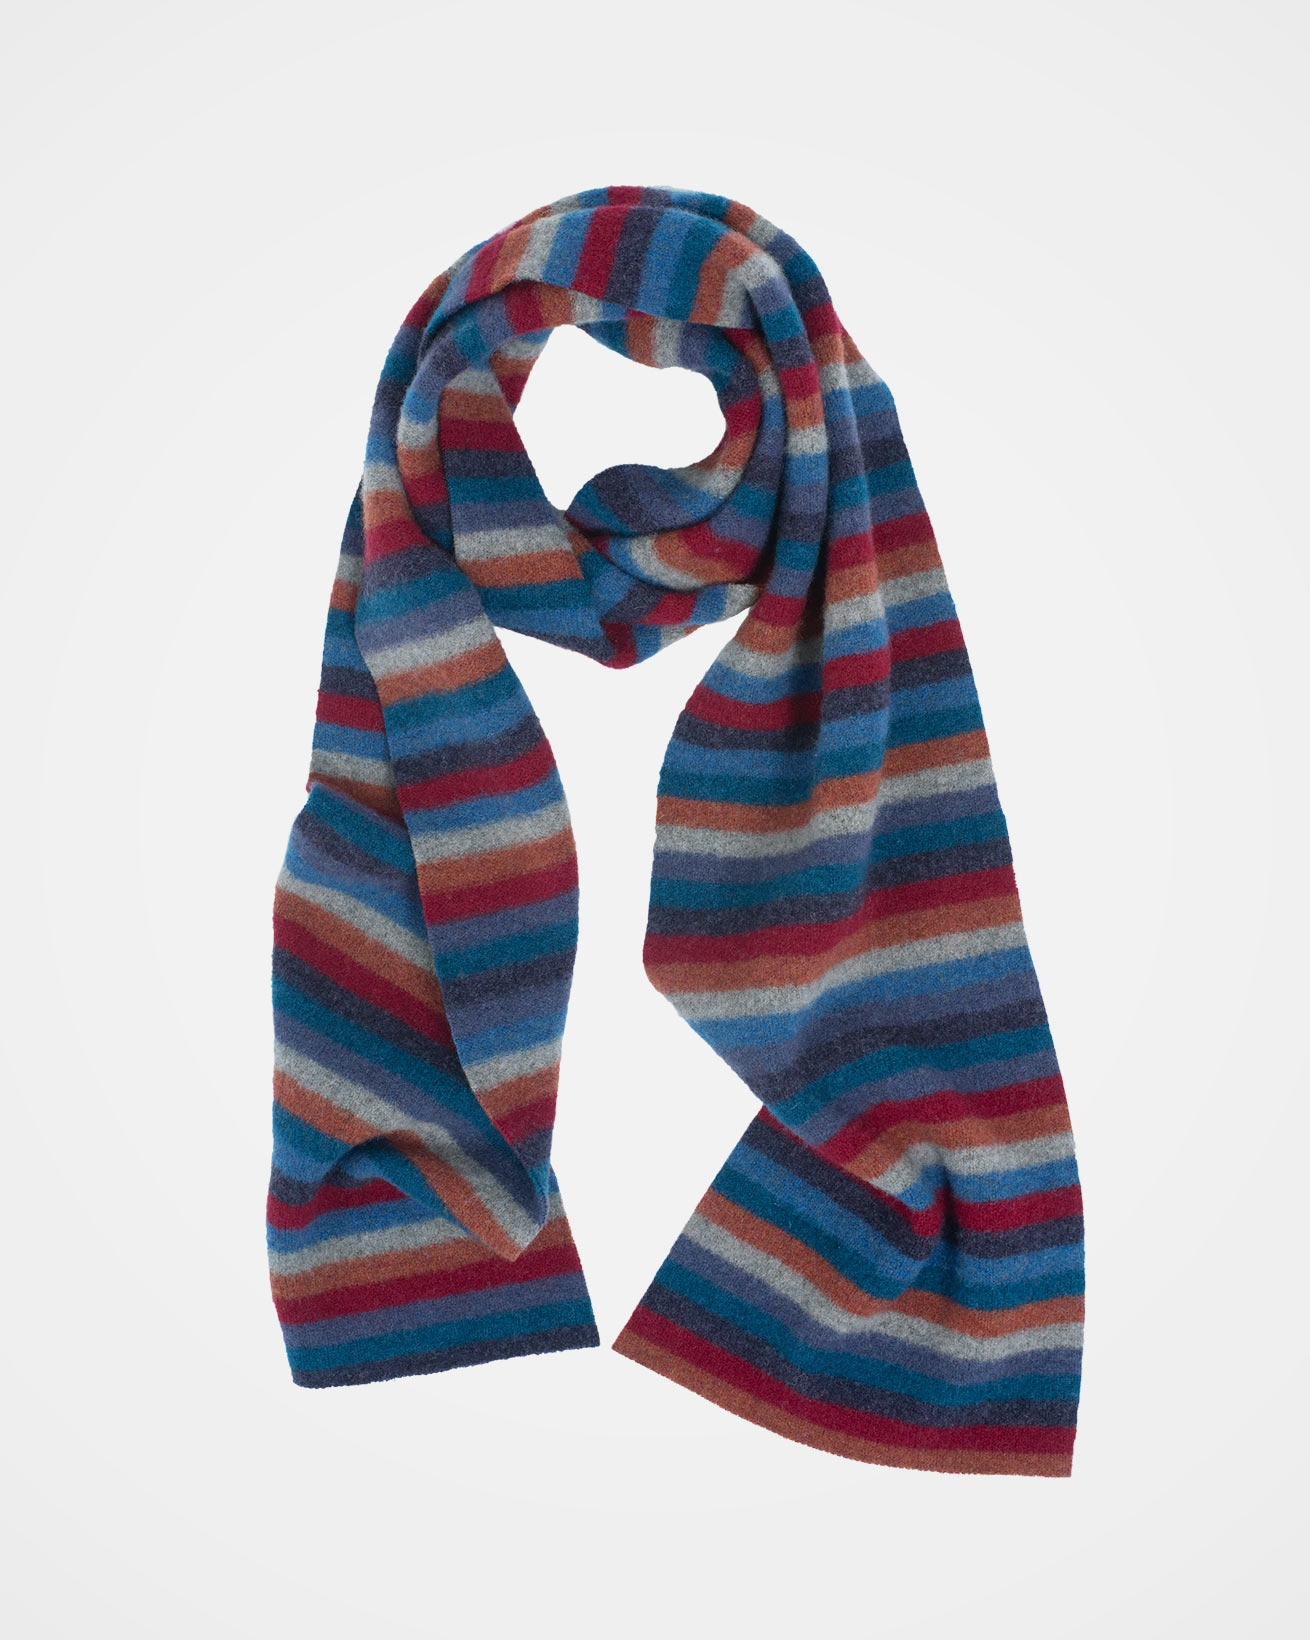 7652_red-and-blue-stripe-scarf_icelandic-stripe_swirl.jpg